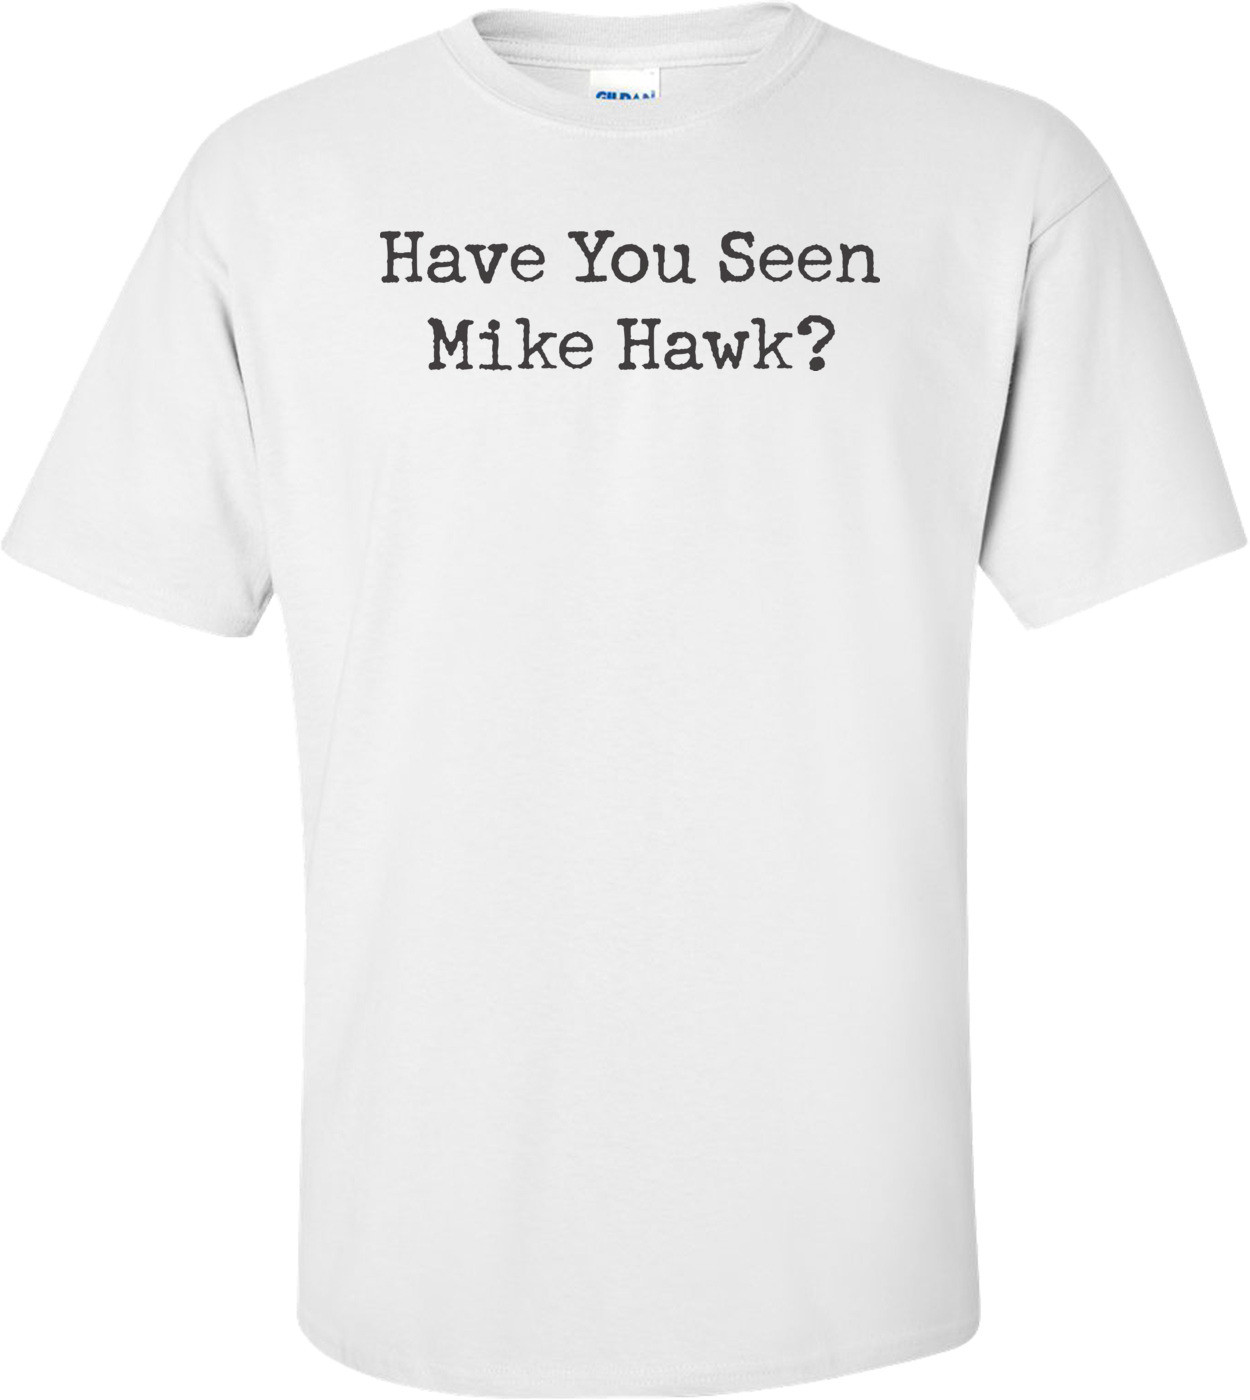 Have You Seen Mike Hawk T-shirt